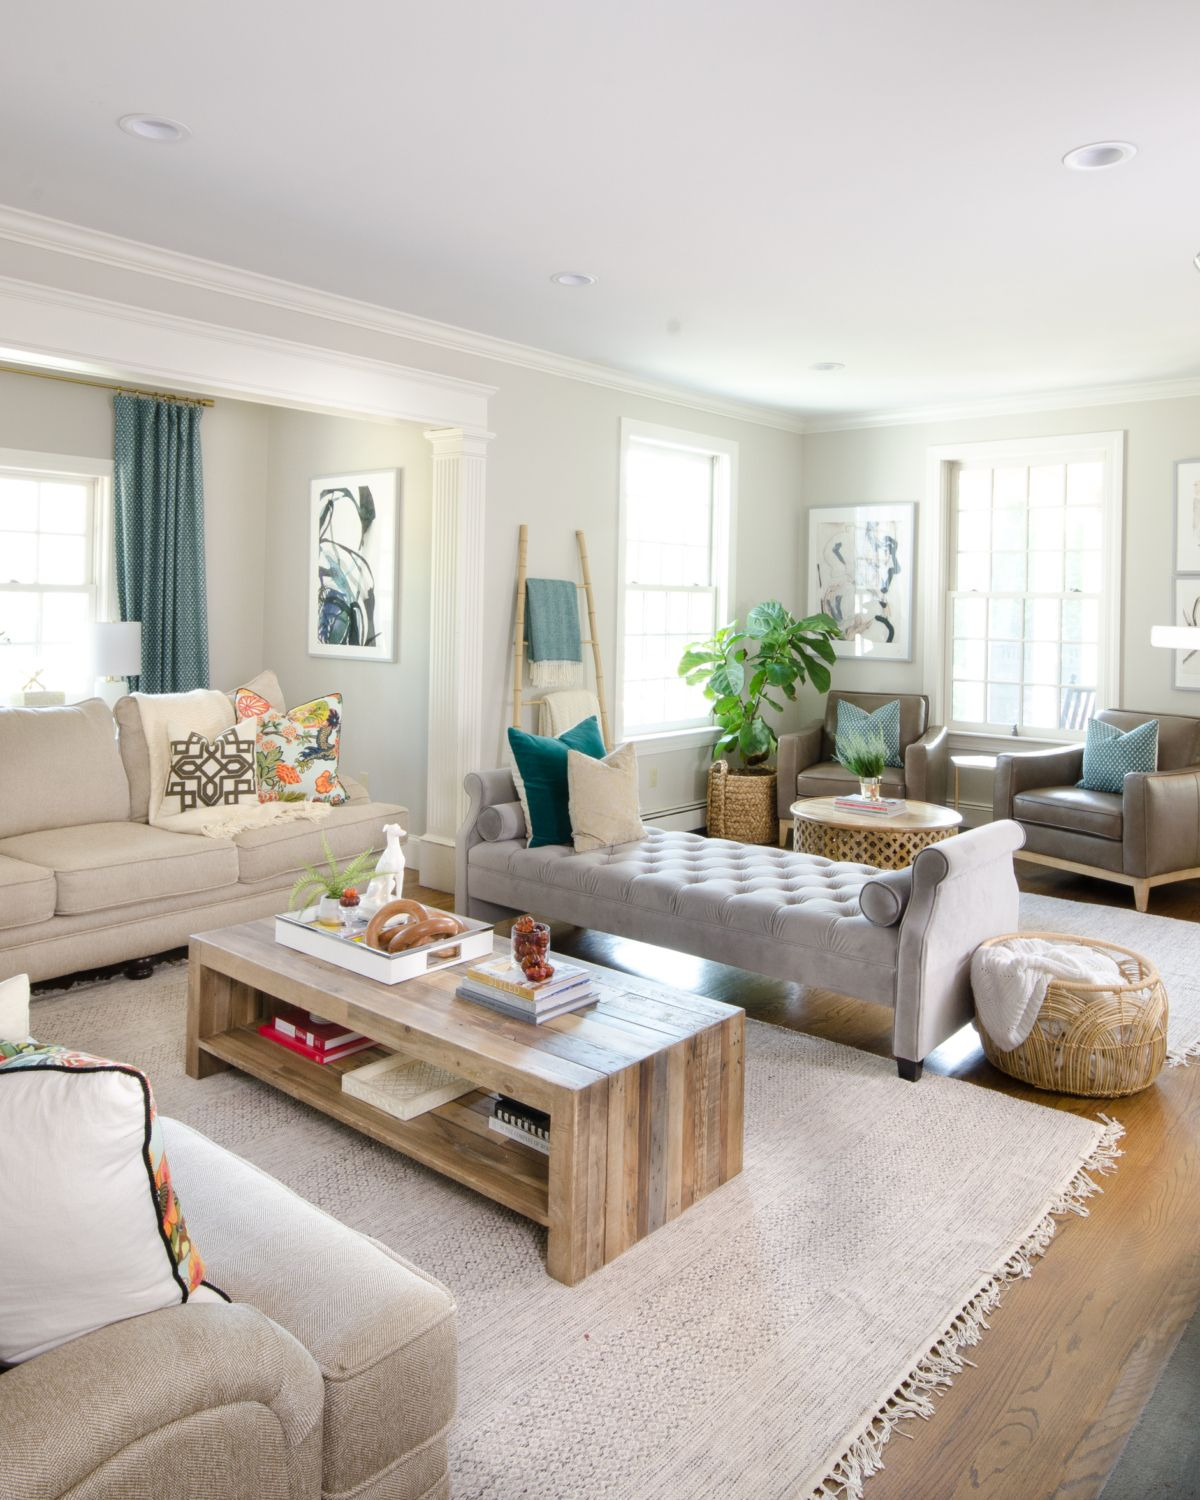 Family In Living Room: Living Room Furniture Layout, Family